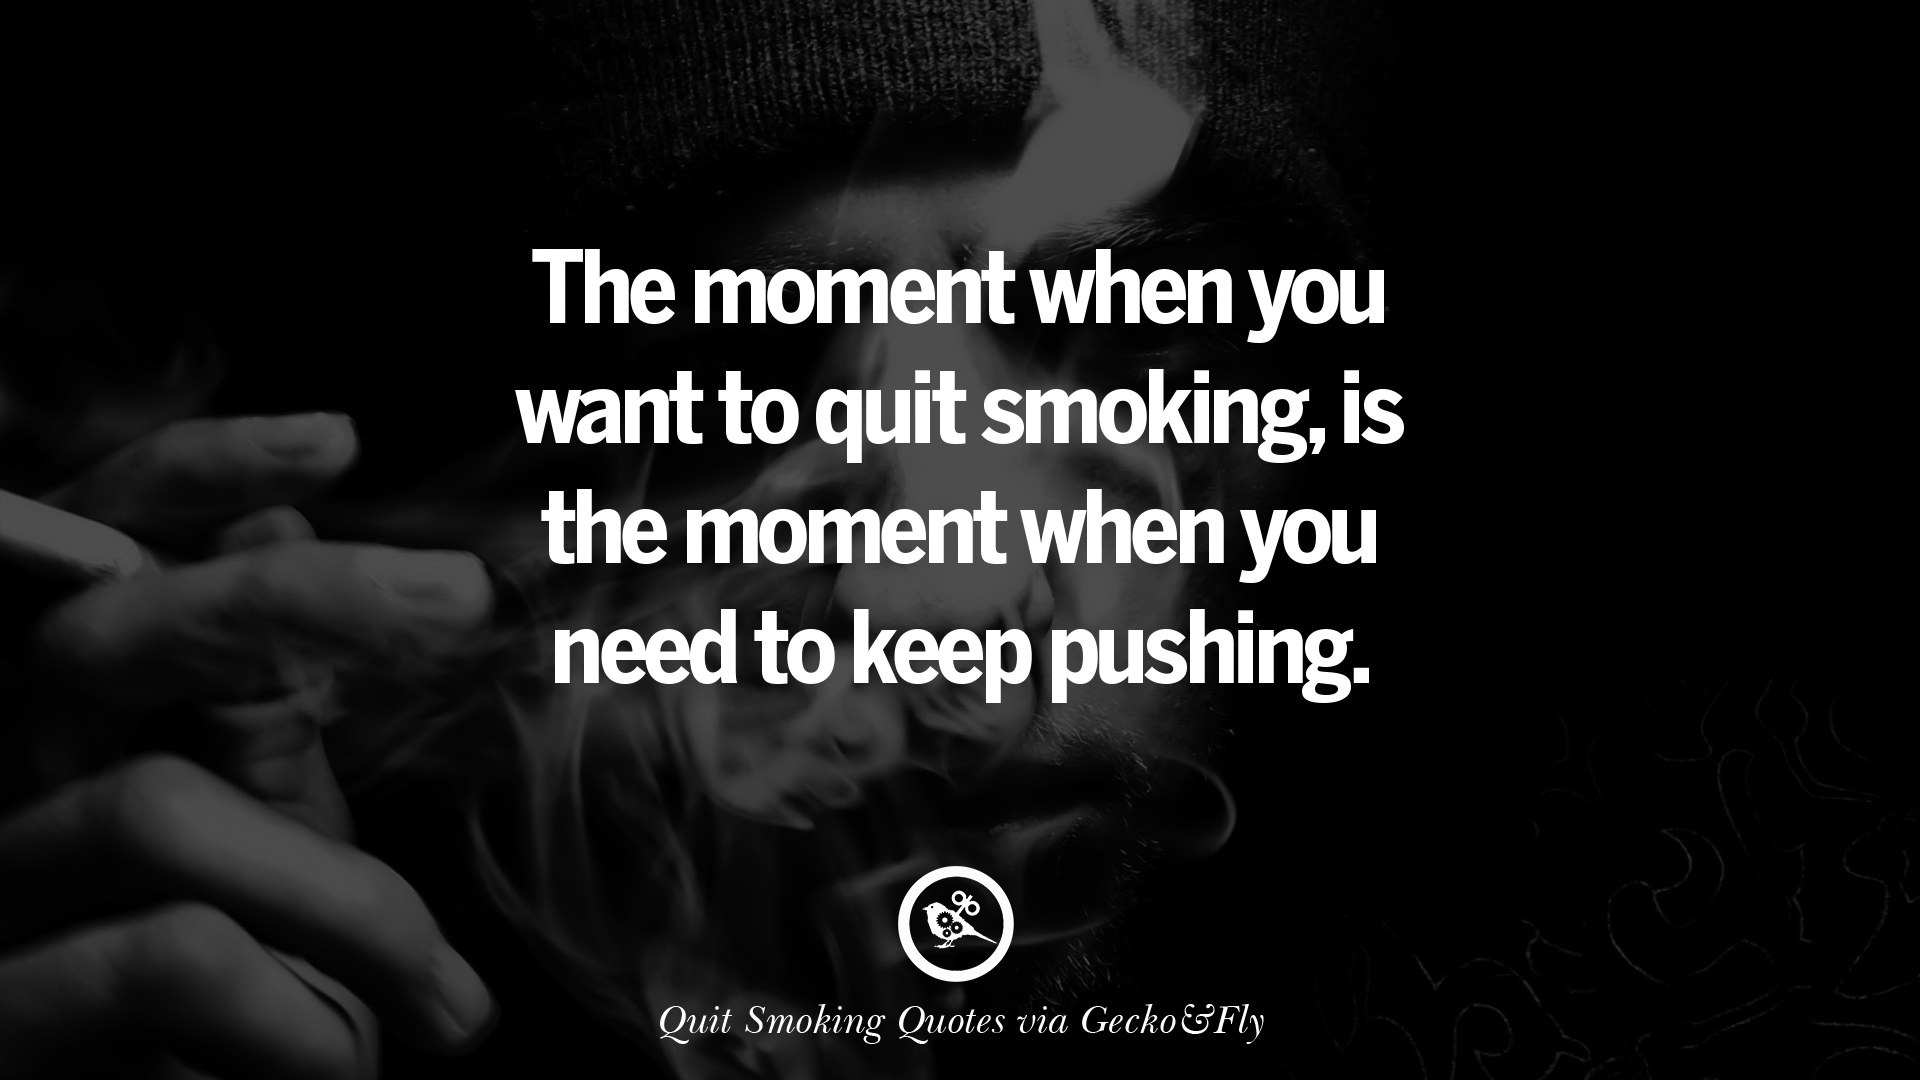 Smoking Quotes Cdn.geckoandfly Wpcontent Uploads 2017 02 Quitsmokingquotes